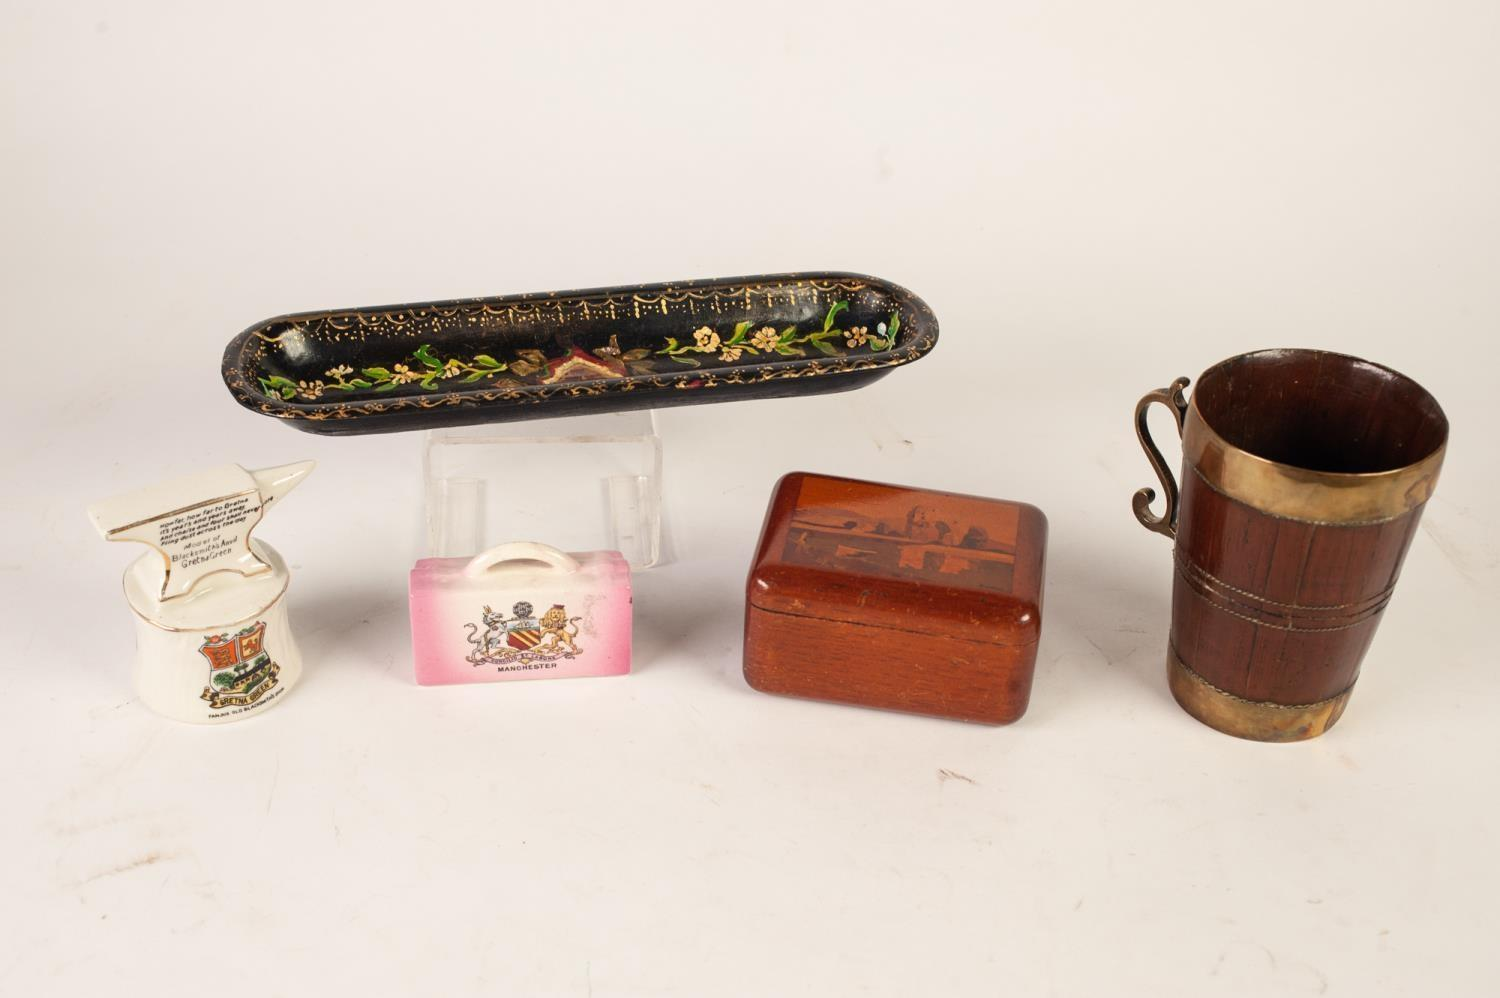 """Lot 379 - NINETEENTH CENTURY DUTCH STAVED/COOPERED CEDARWOOD TANKARD, with brass mounts and handle, 5"""" 12.7cm)"""